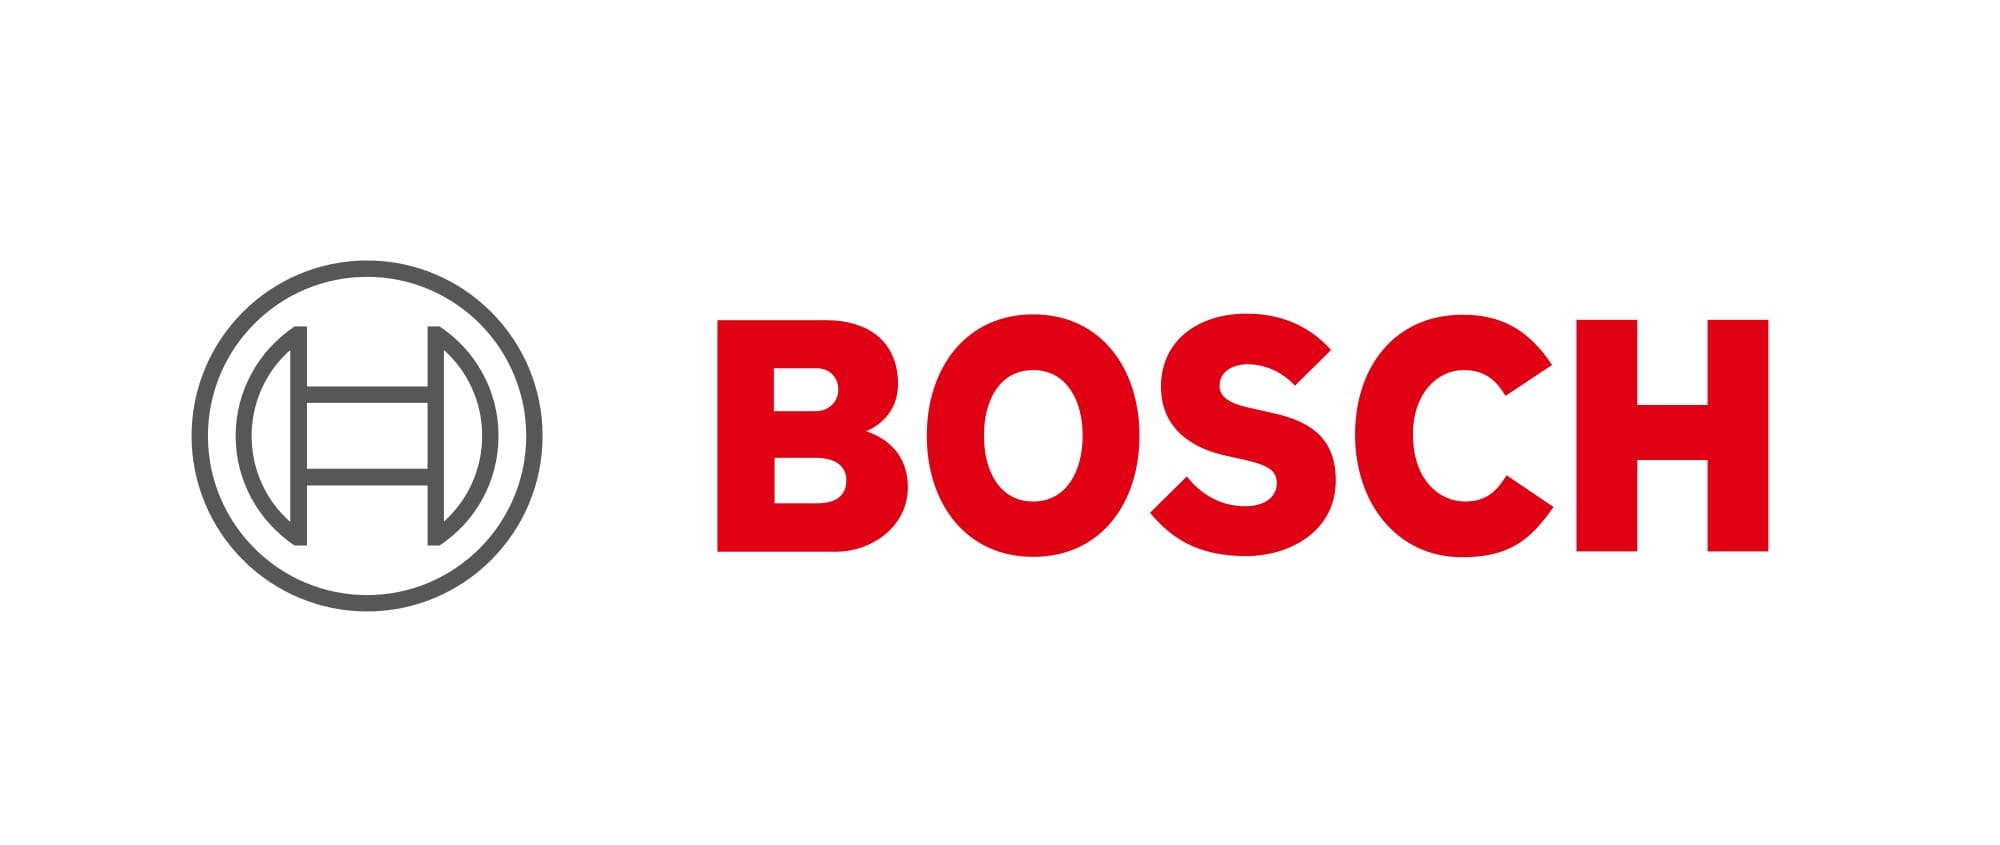 Bosch Logo And Symbol Meaning History Png